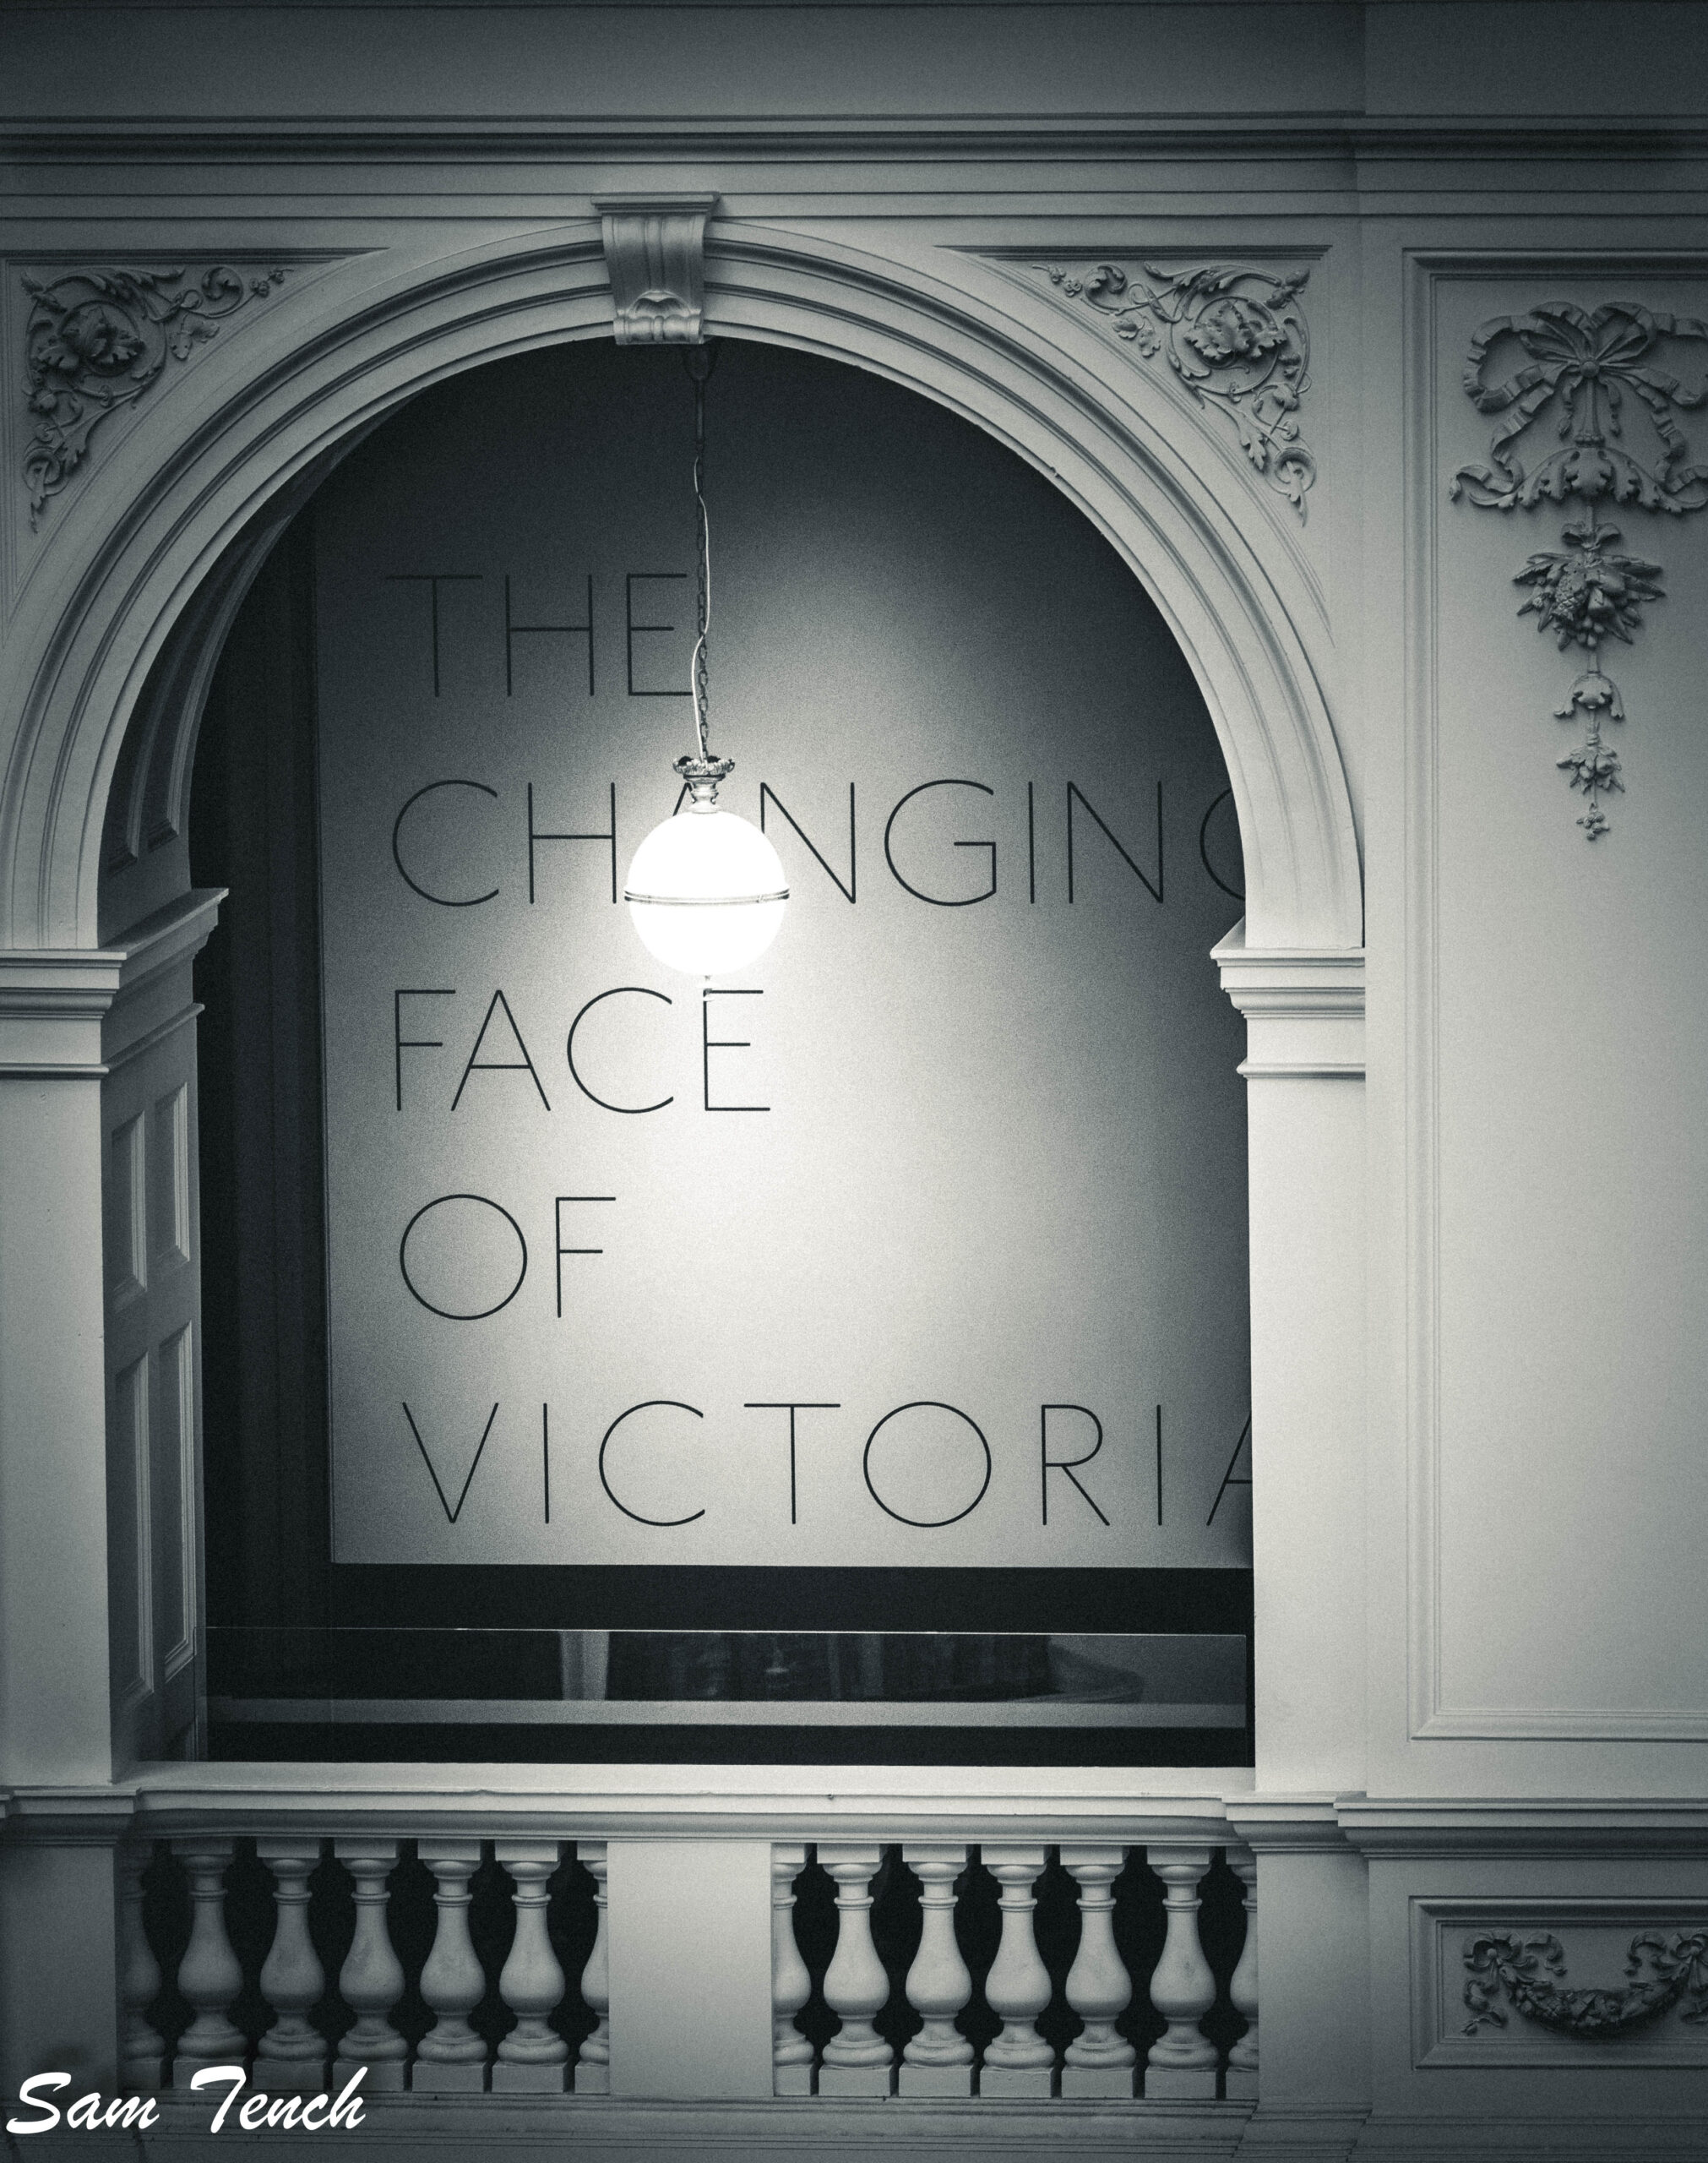 The Changing Face of Victoria